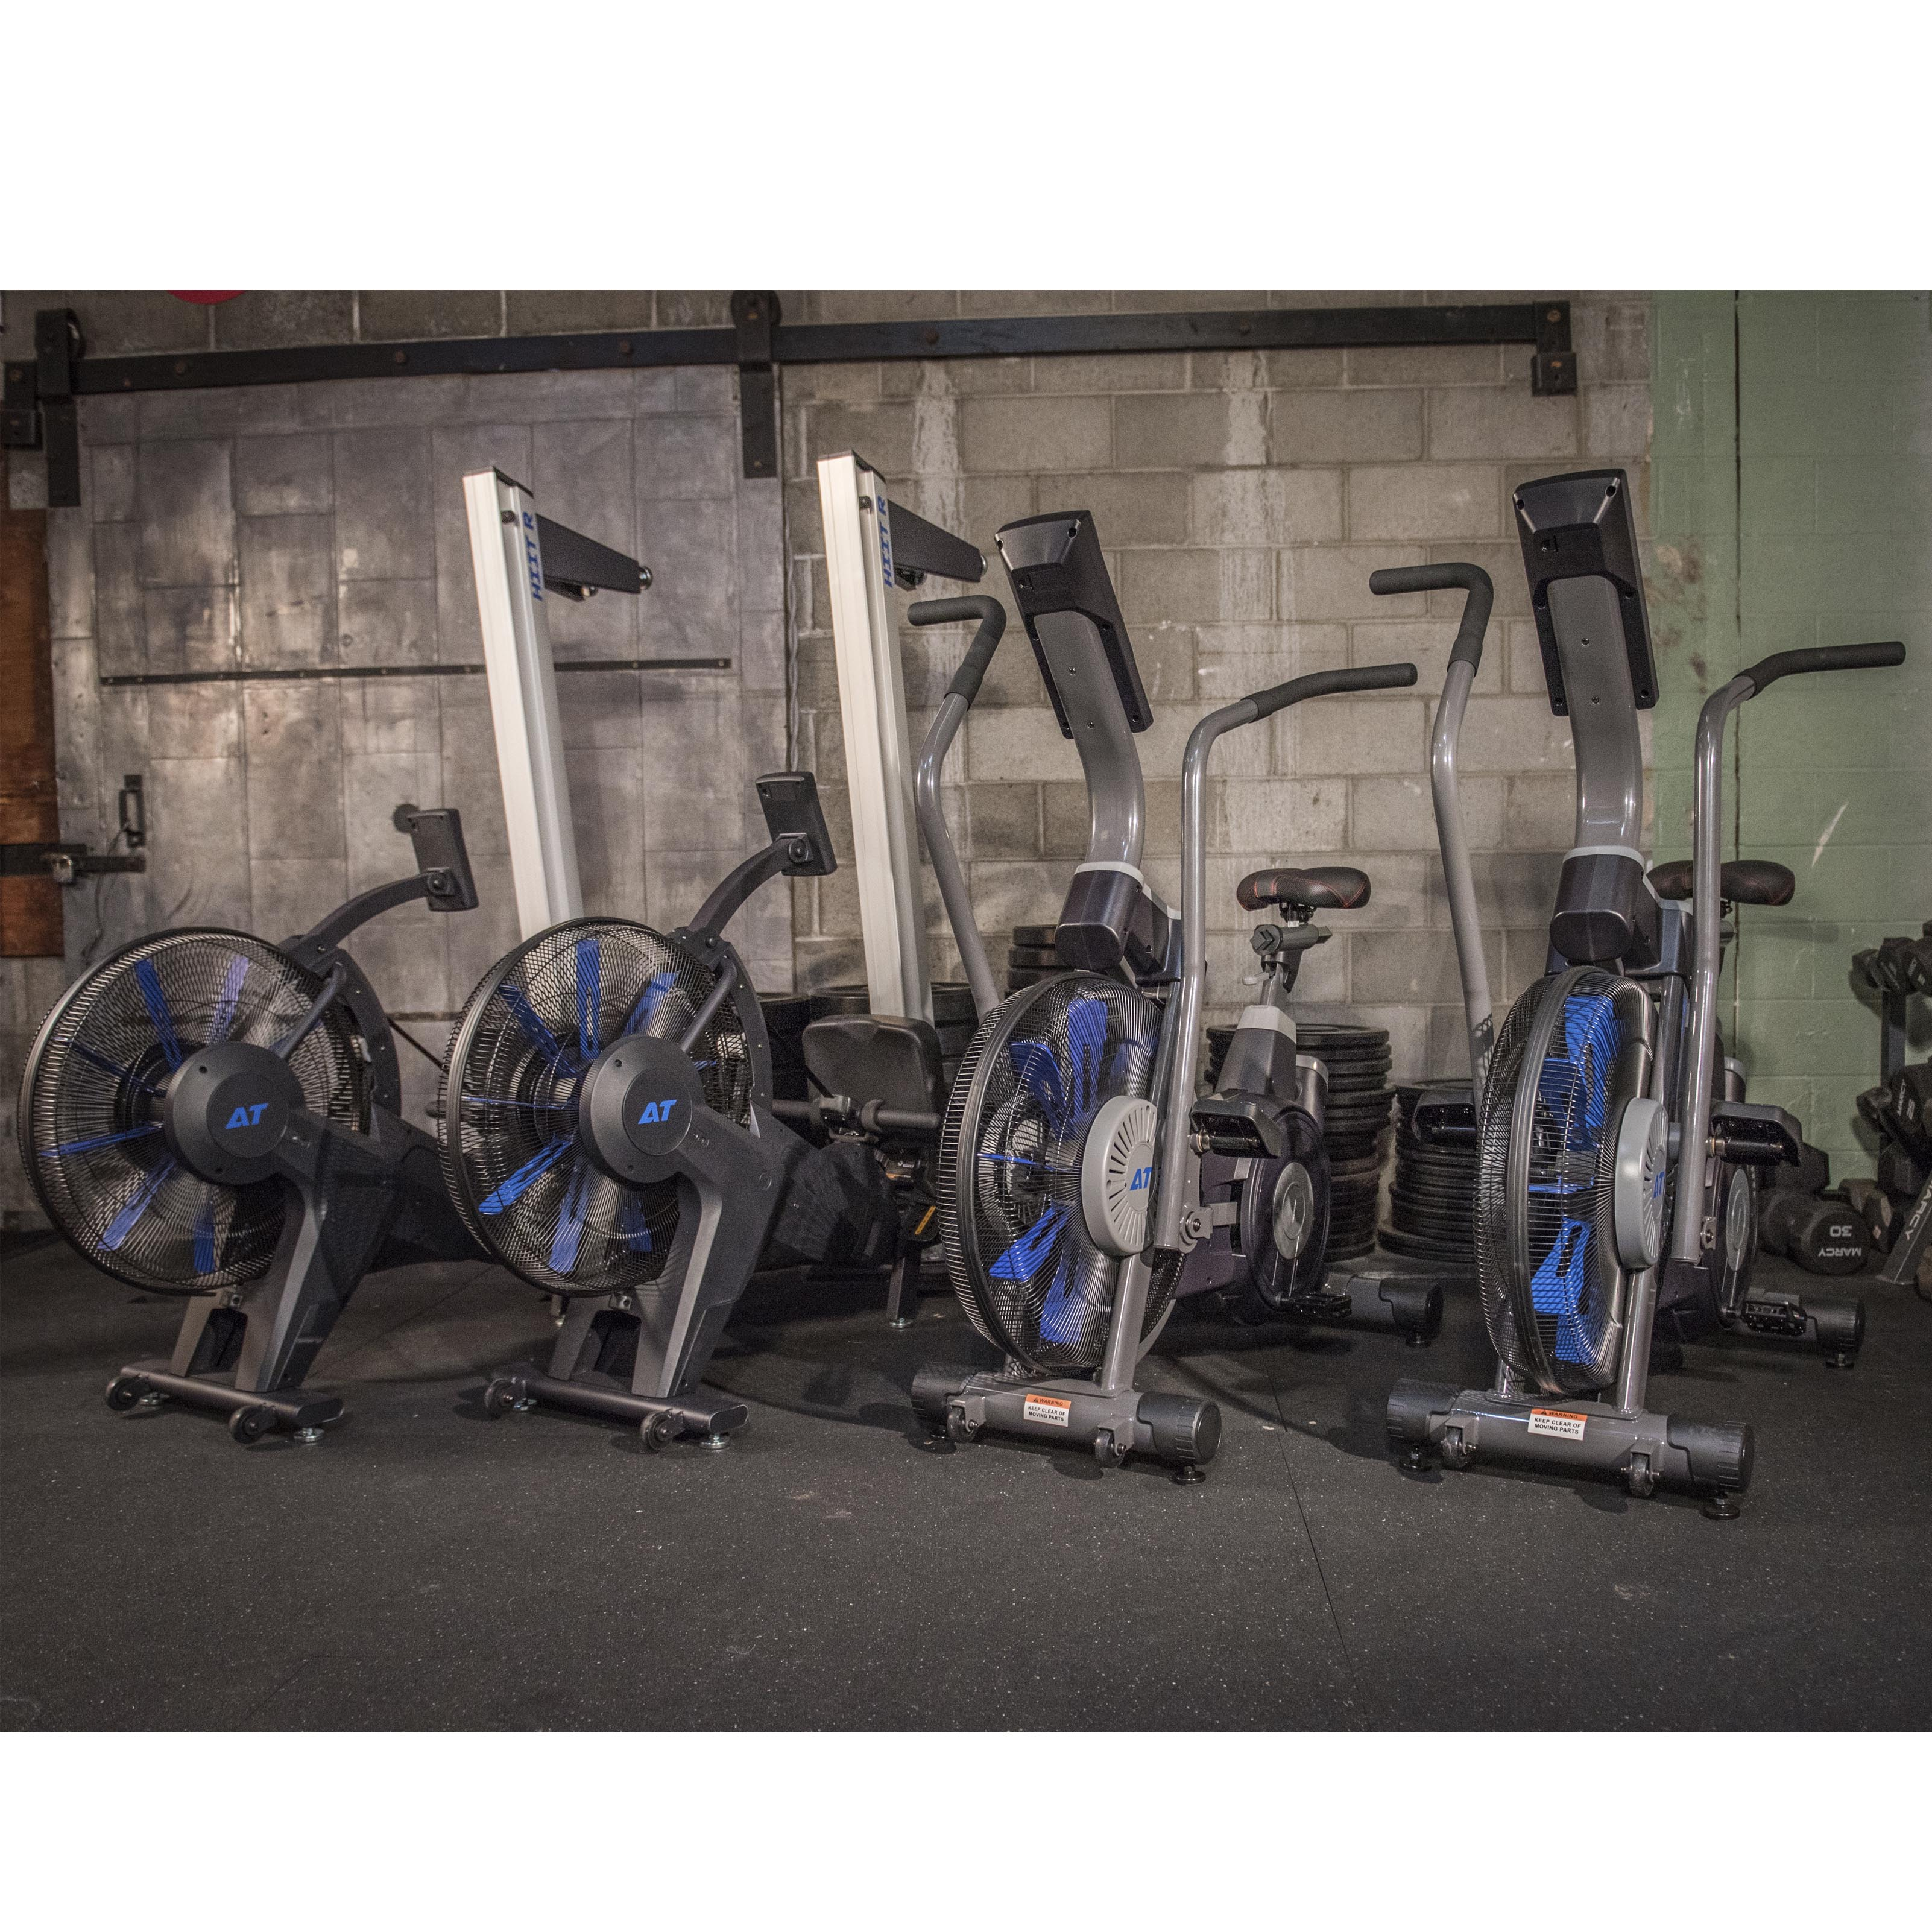 AirTEK Fitness HIIT AirBike and Rower for Gyms